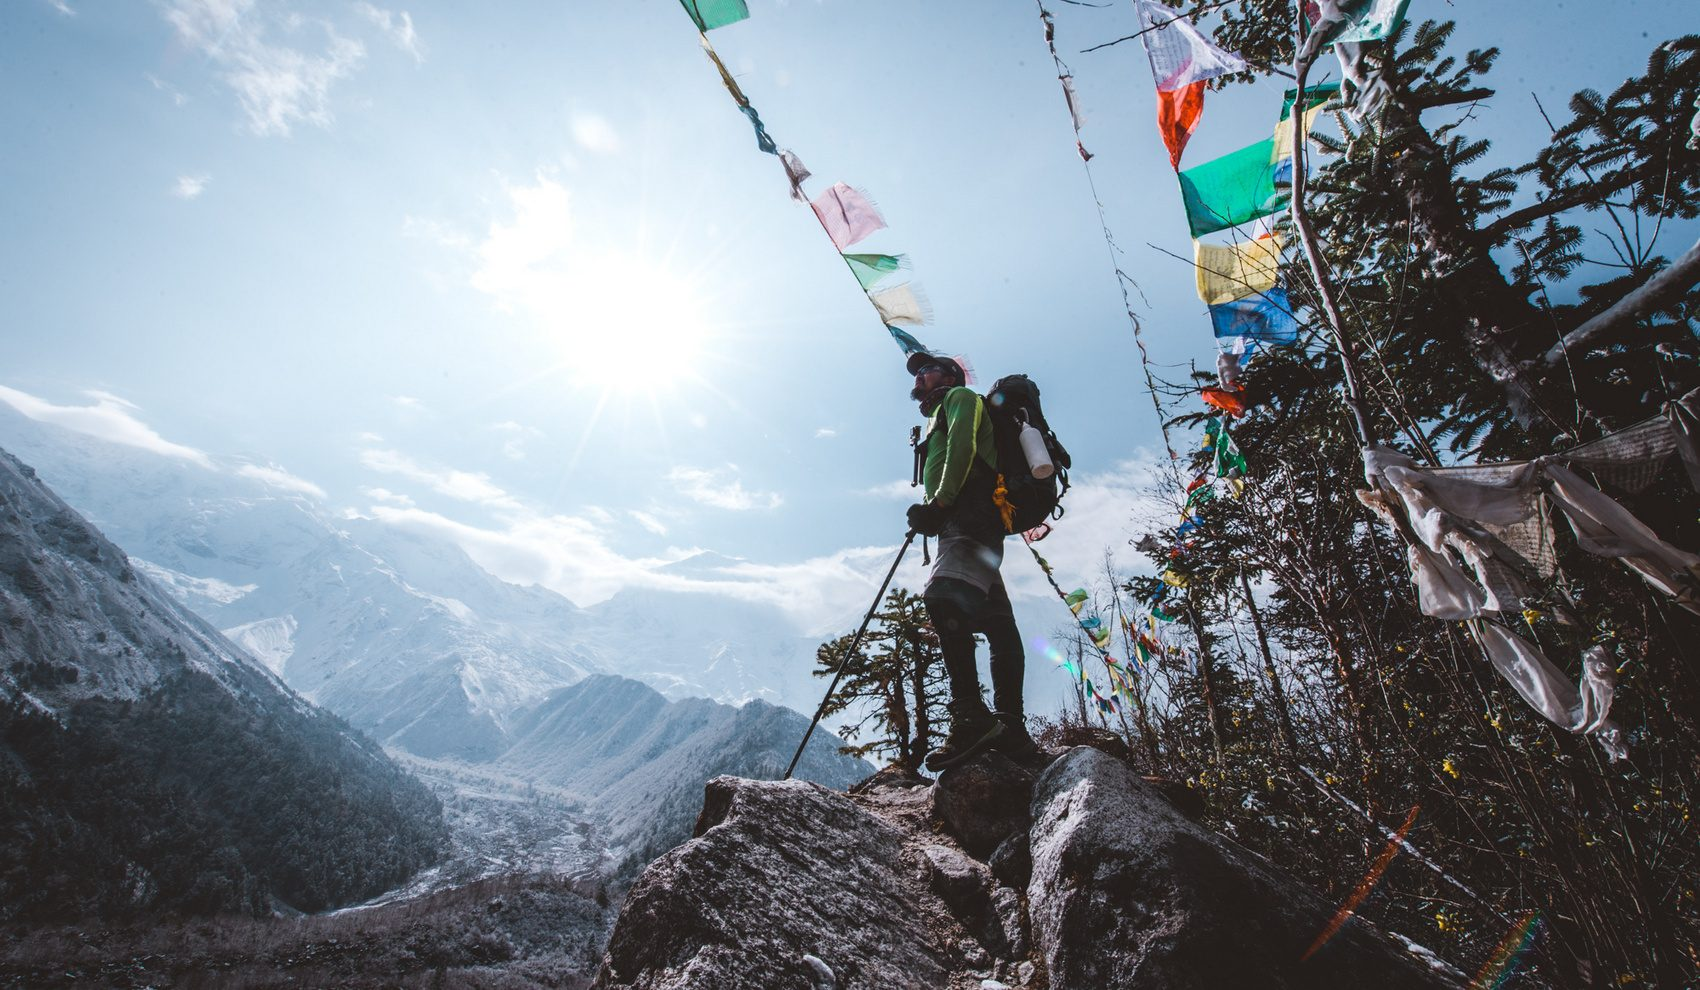 A Sherpa stands on an overlook underneath prayer flags on the Manaslu Circuit